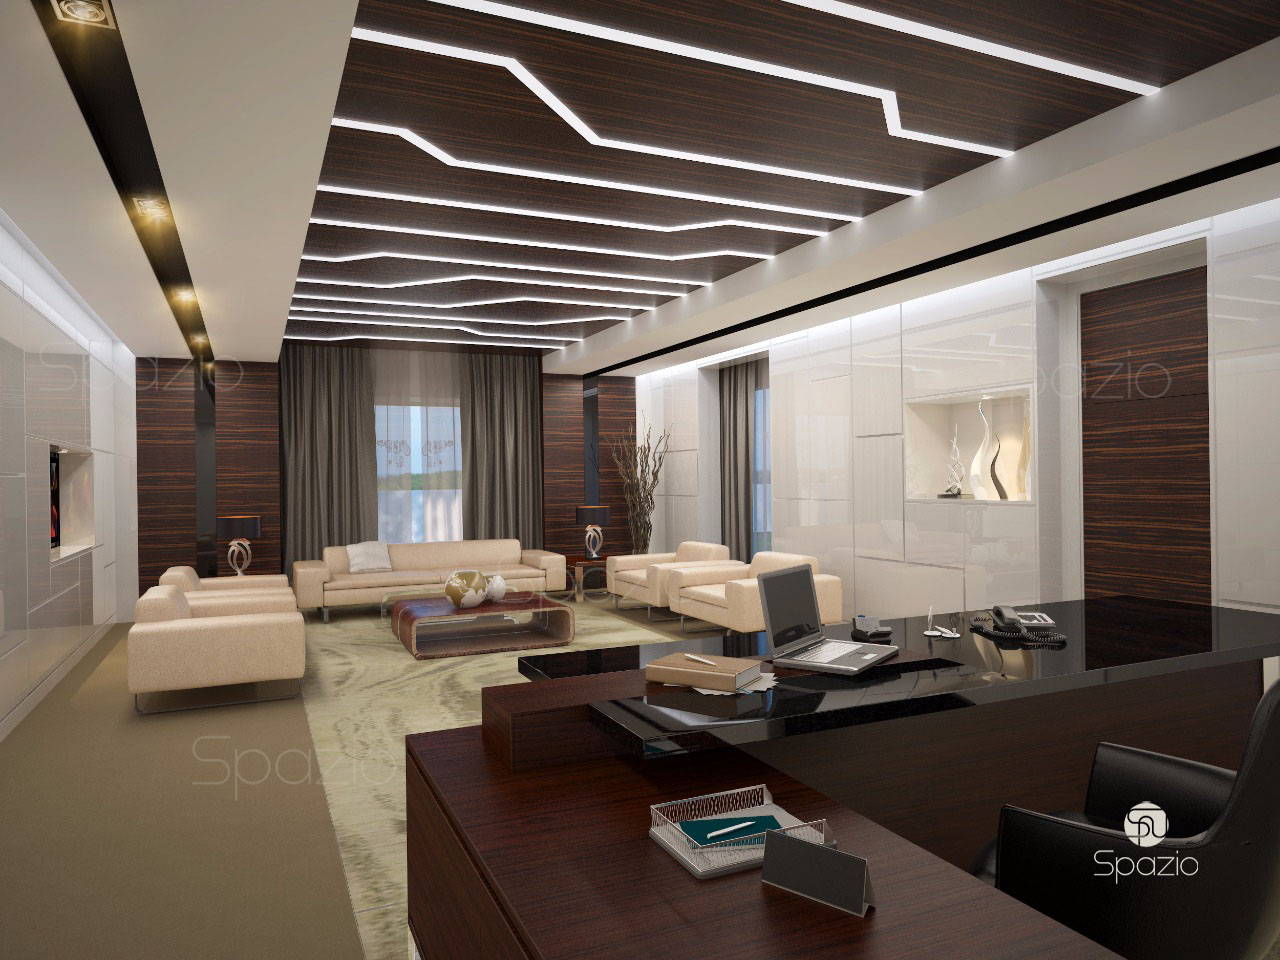 Office interior design company in dubai spazio for Interior design company list